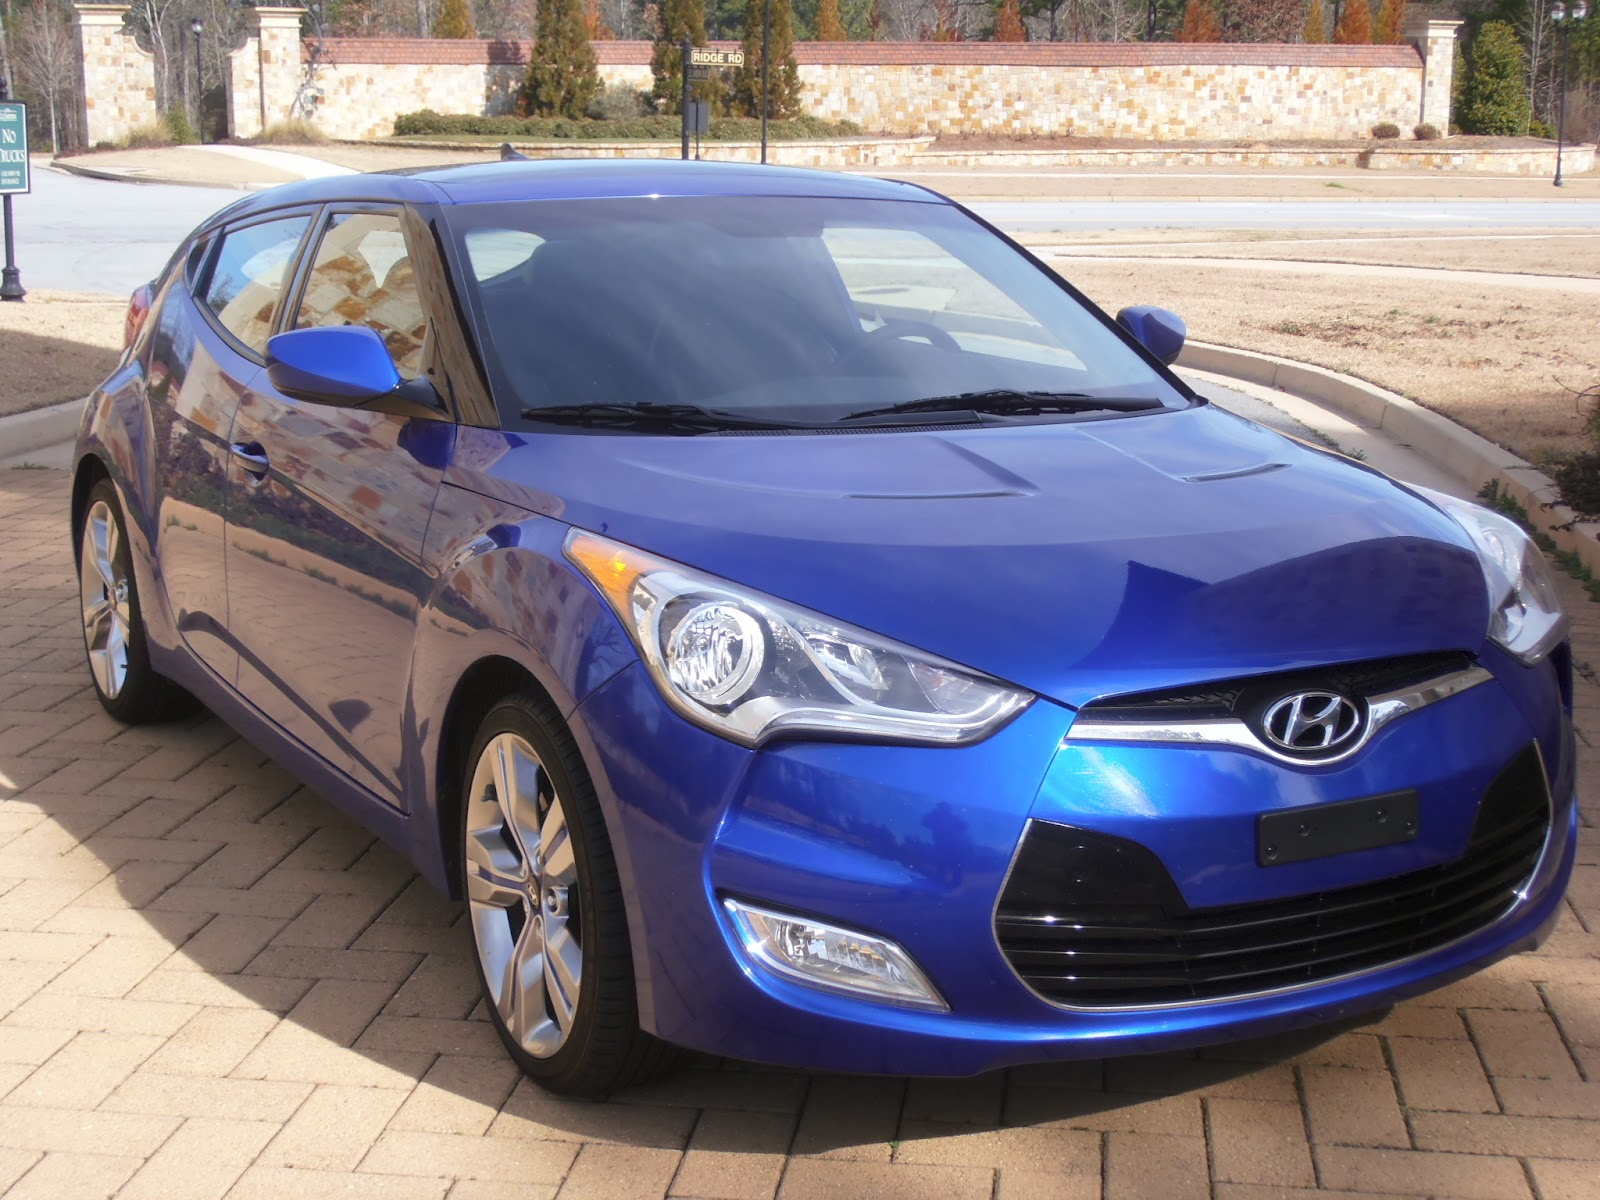 Highlights The Veloster is the only vehicle available in the market today as a three-door hatchback. This is also the first Hyundai to offer the brand\u0027s ... & JeffCars.com:Your Auto Industry Connection: 2012 Hyundai Veloster: A ...